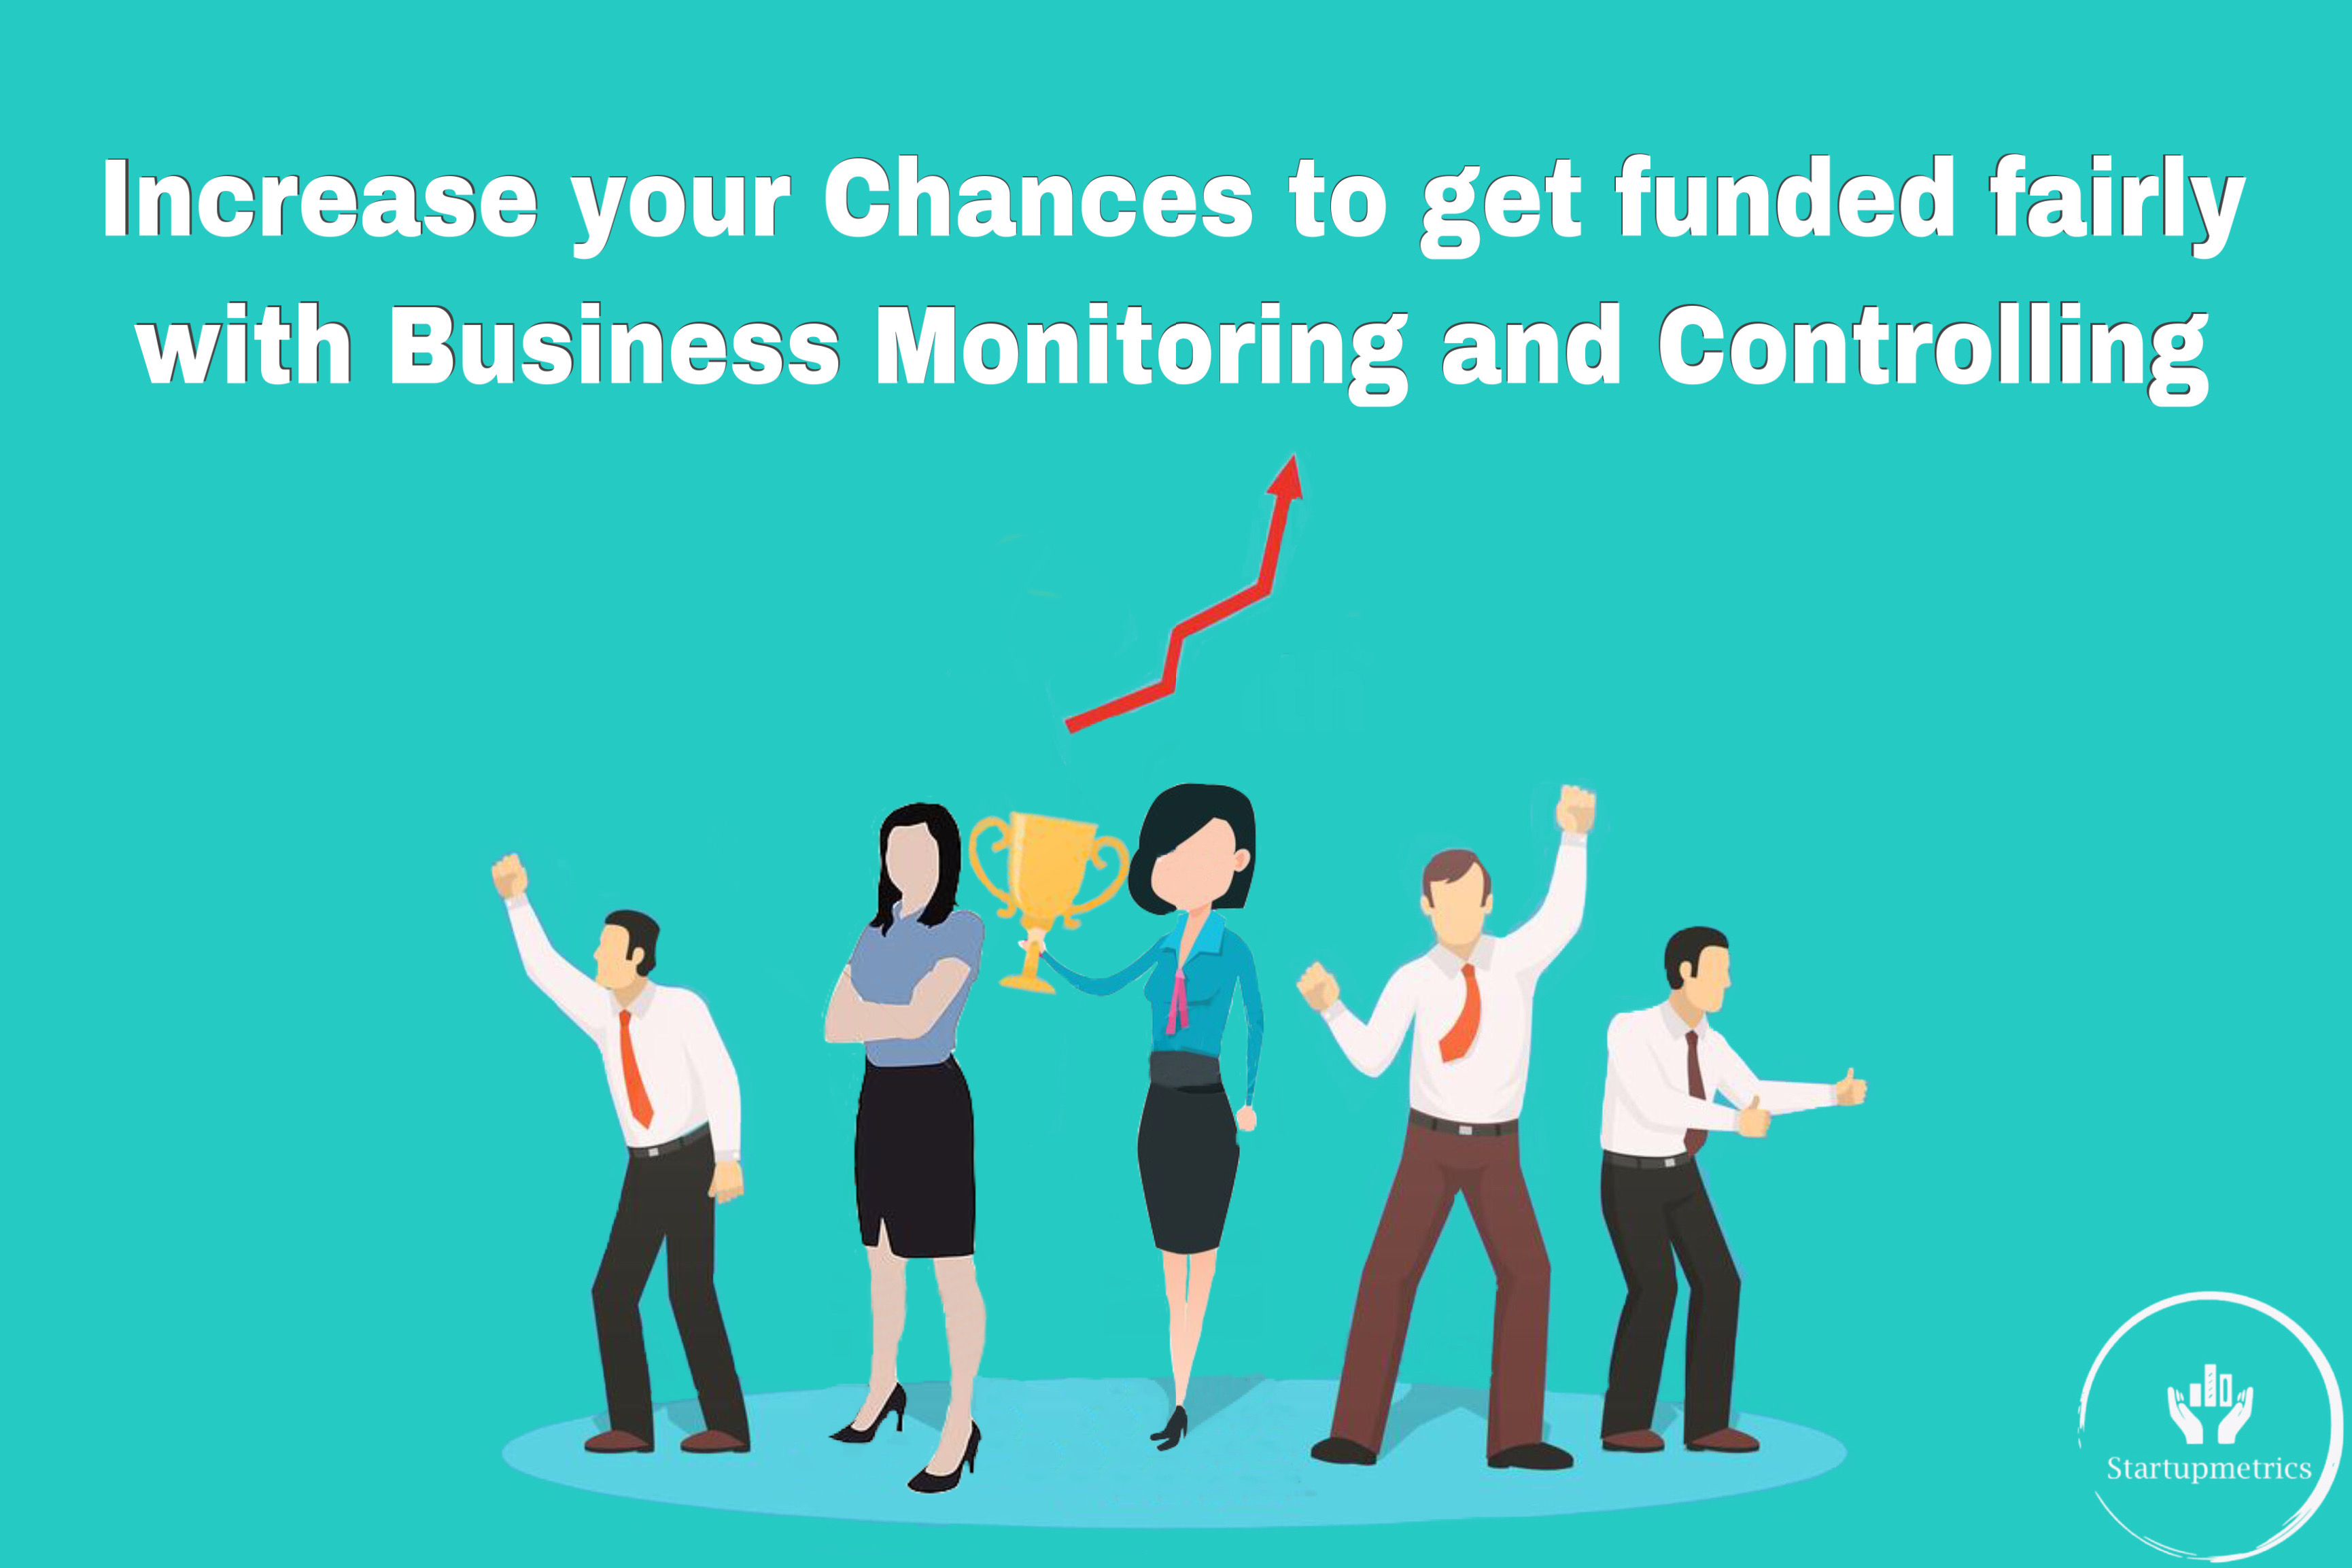 How can Business Monitoring and Controlling help you to get funded fairly?